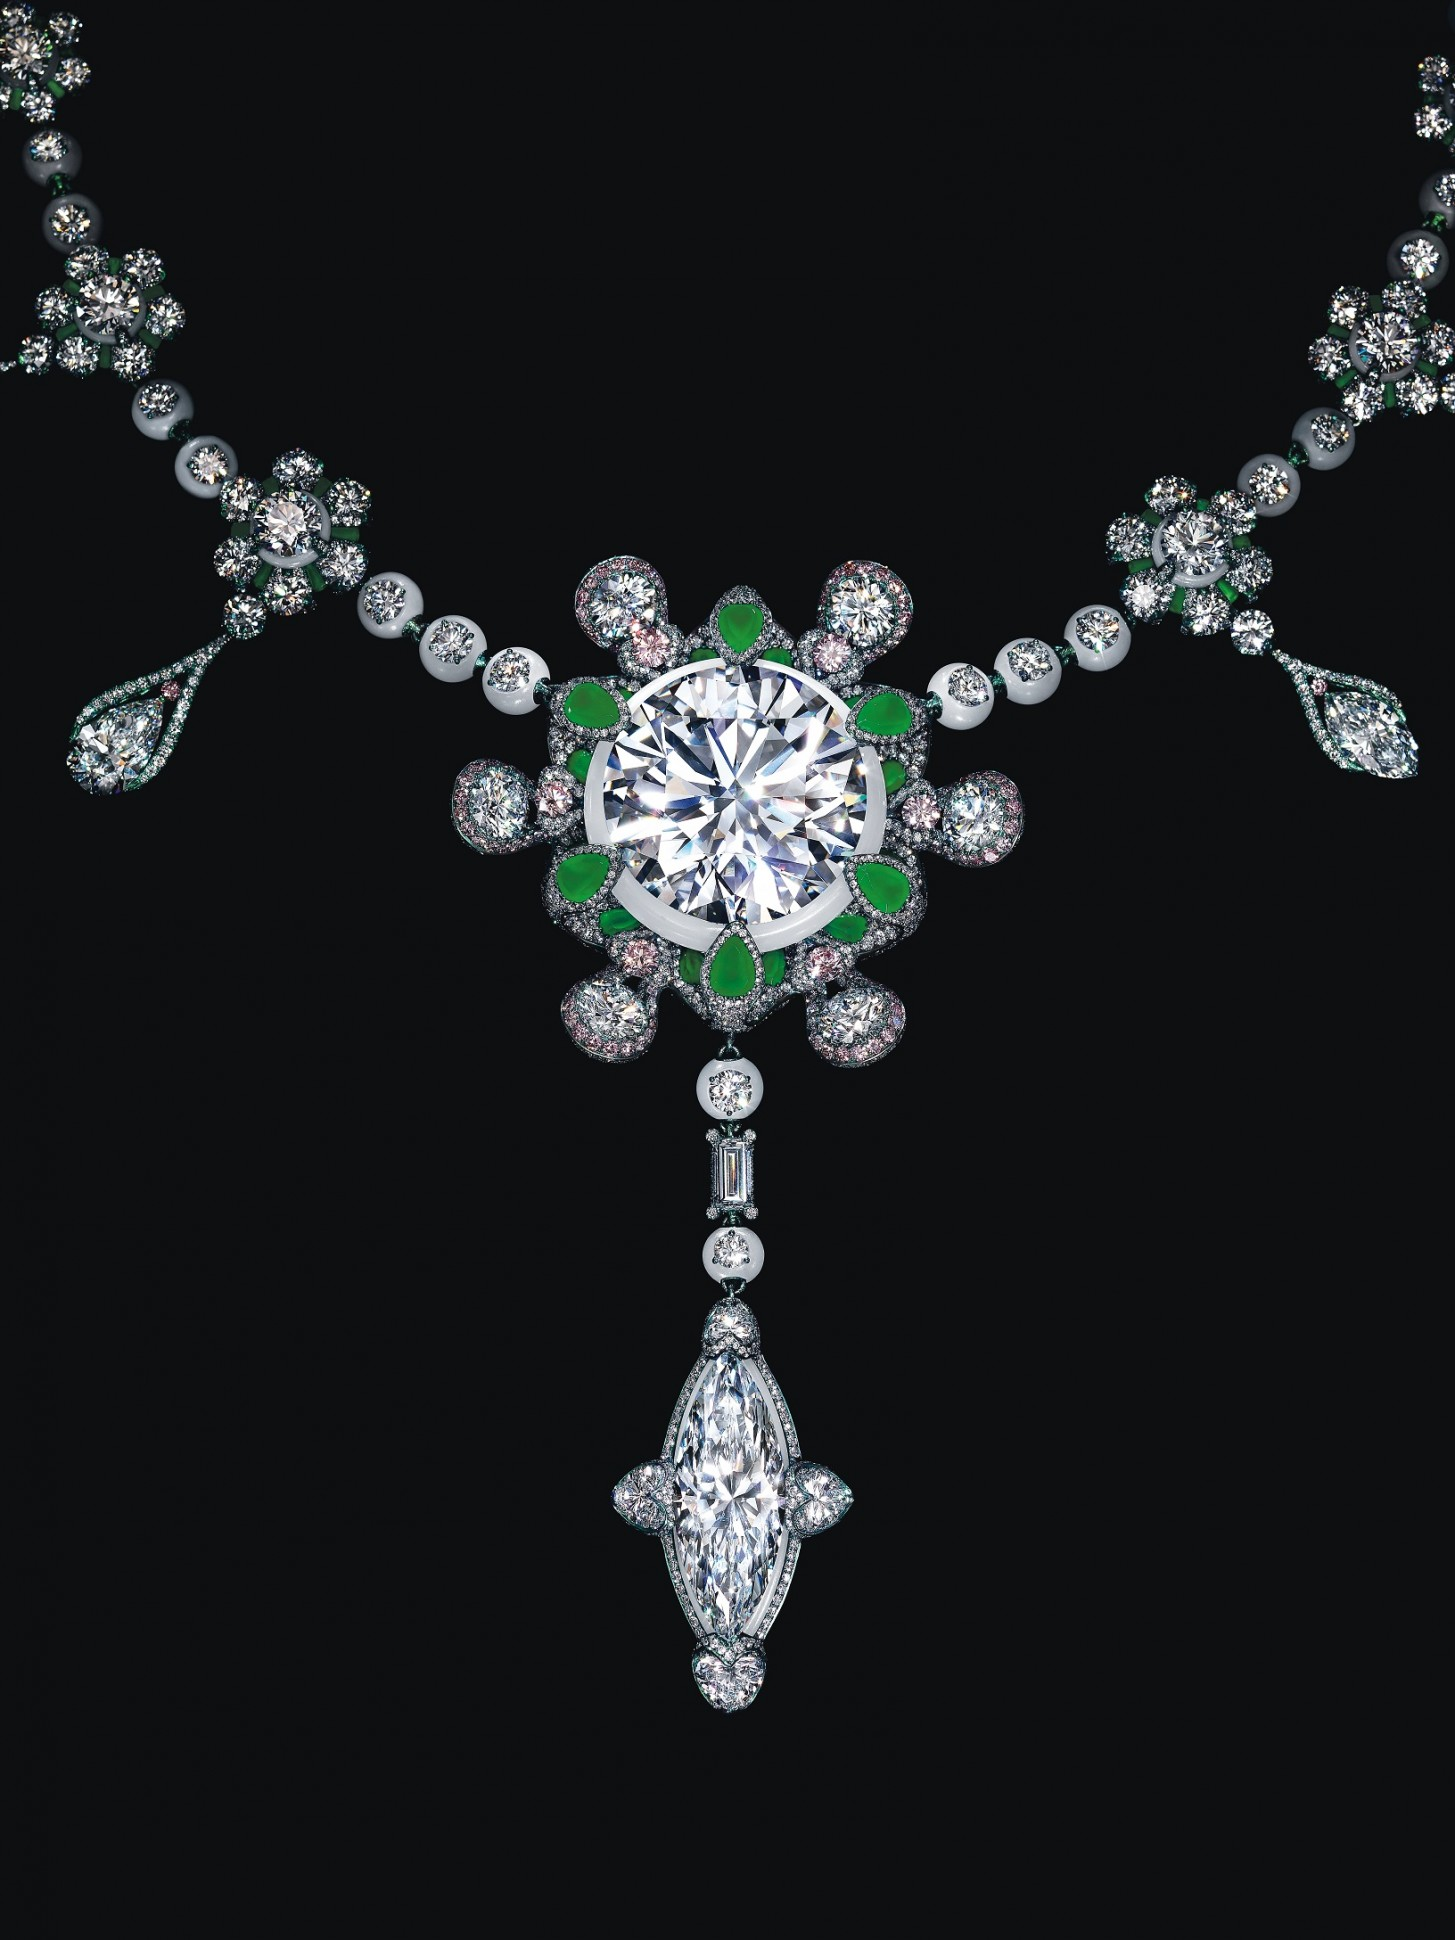 wallace Chan heritage in bloom Integration-of-jade-and-diamonds-1455x1940.jpg